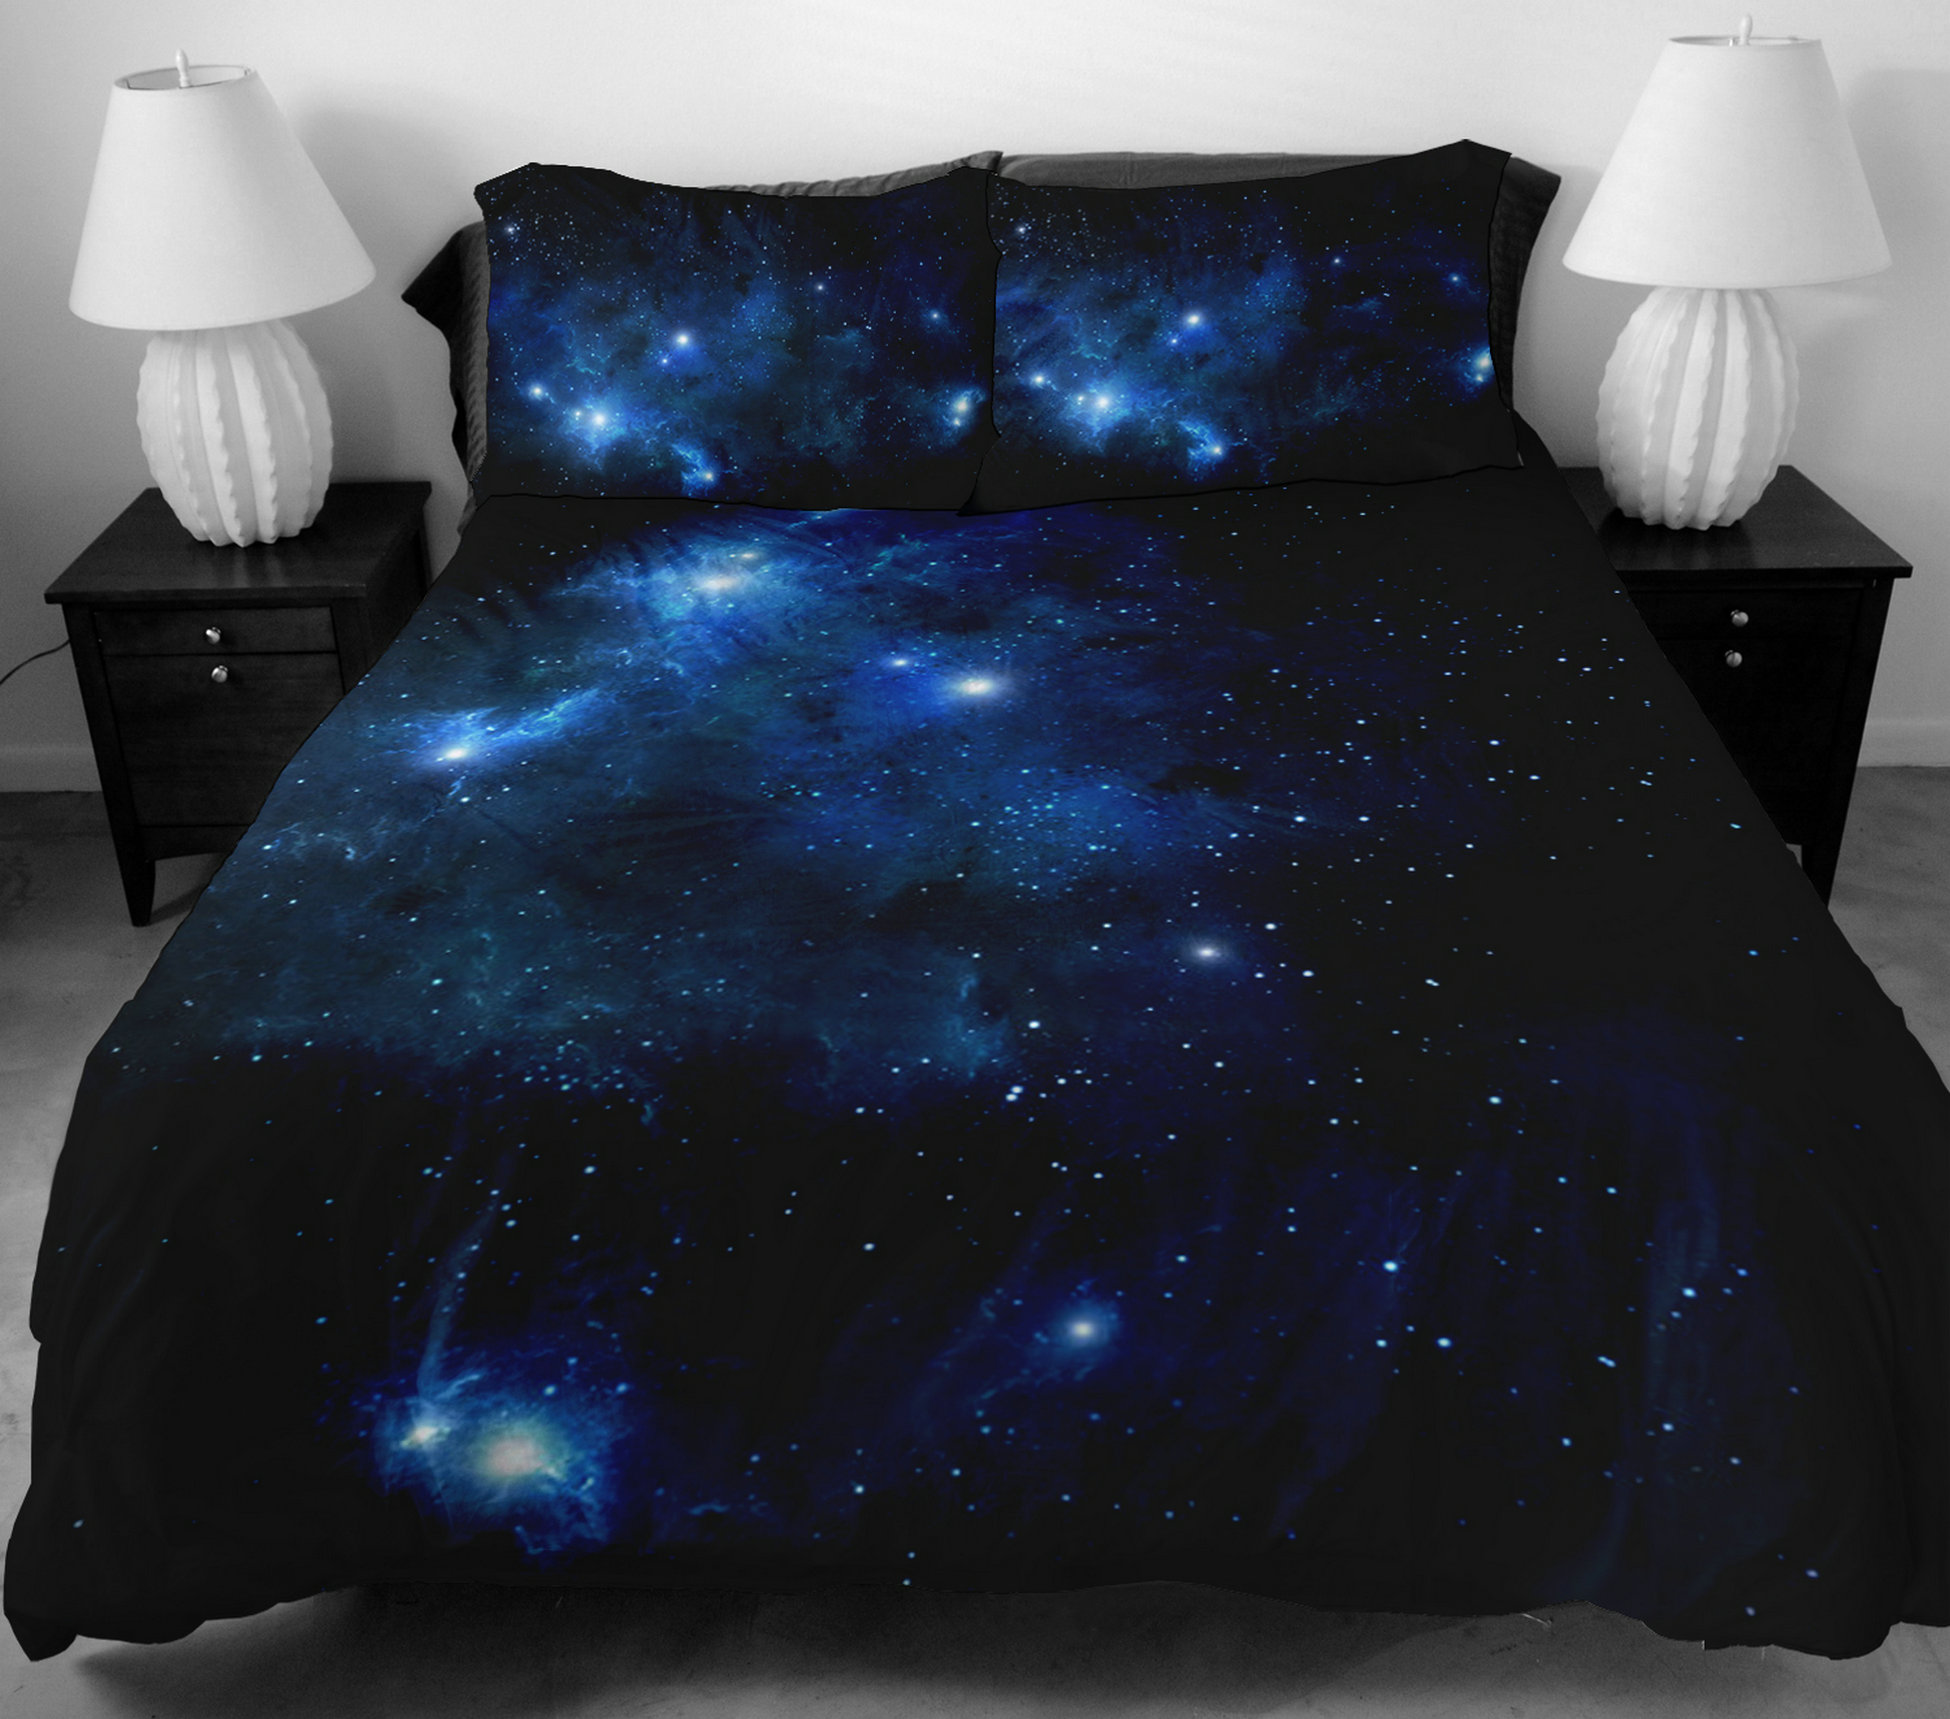 Anlye Boys Bedding Set 1 Side Printing The Navy Blue Star Duvet Covers With Matching Design 2 Pillow Cases For Boys Home Decorating Ideas Anlye Com Storenvy Shop Online Store Powered By Storenvy